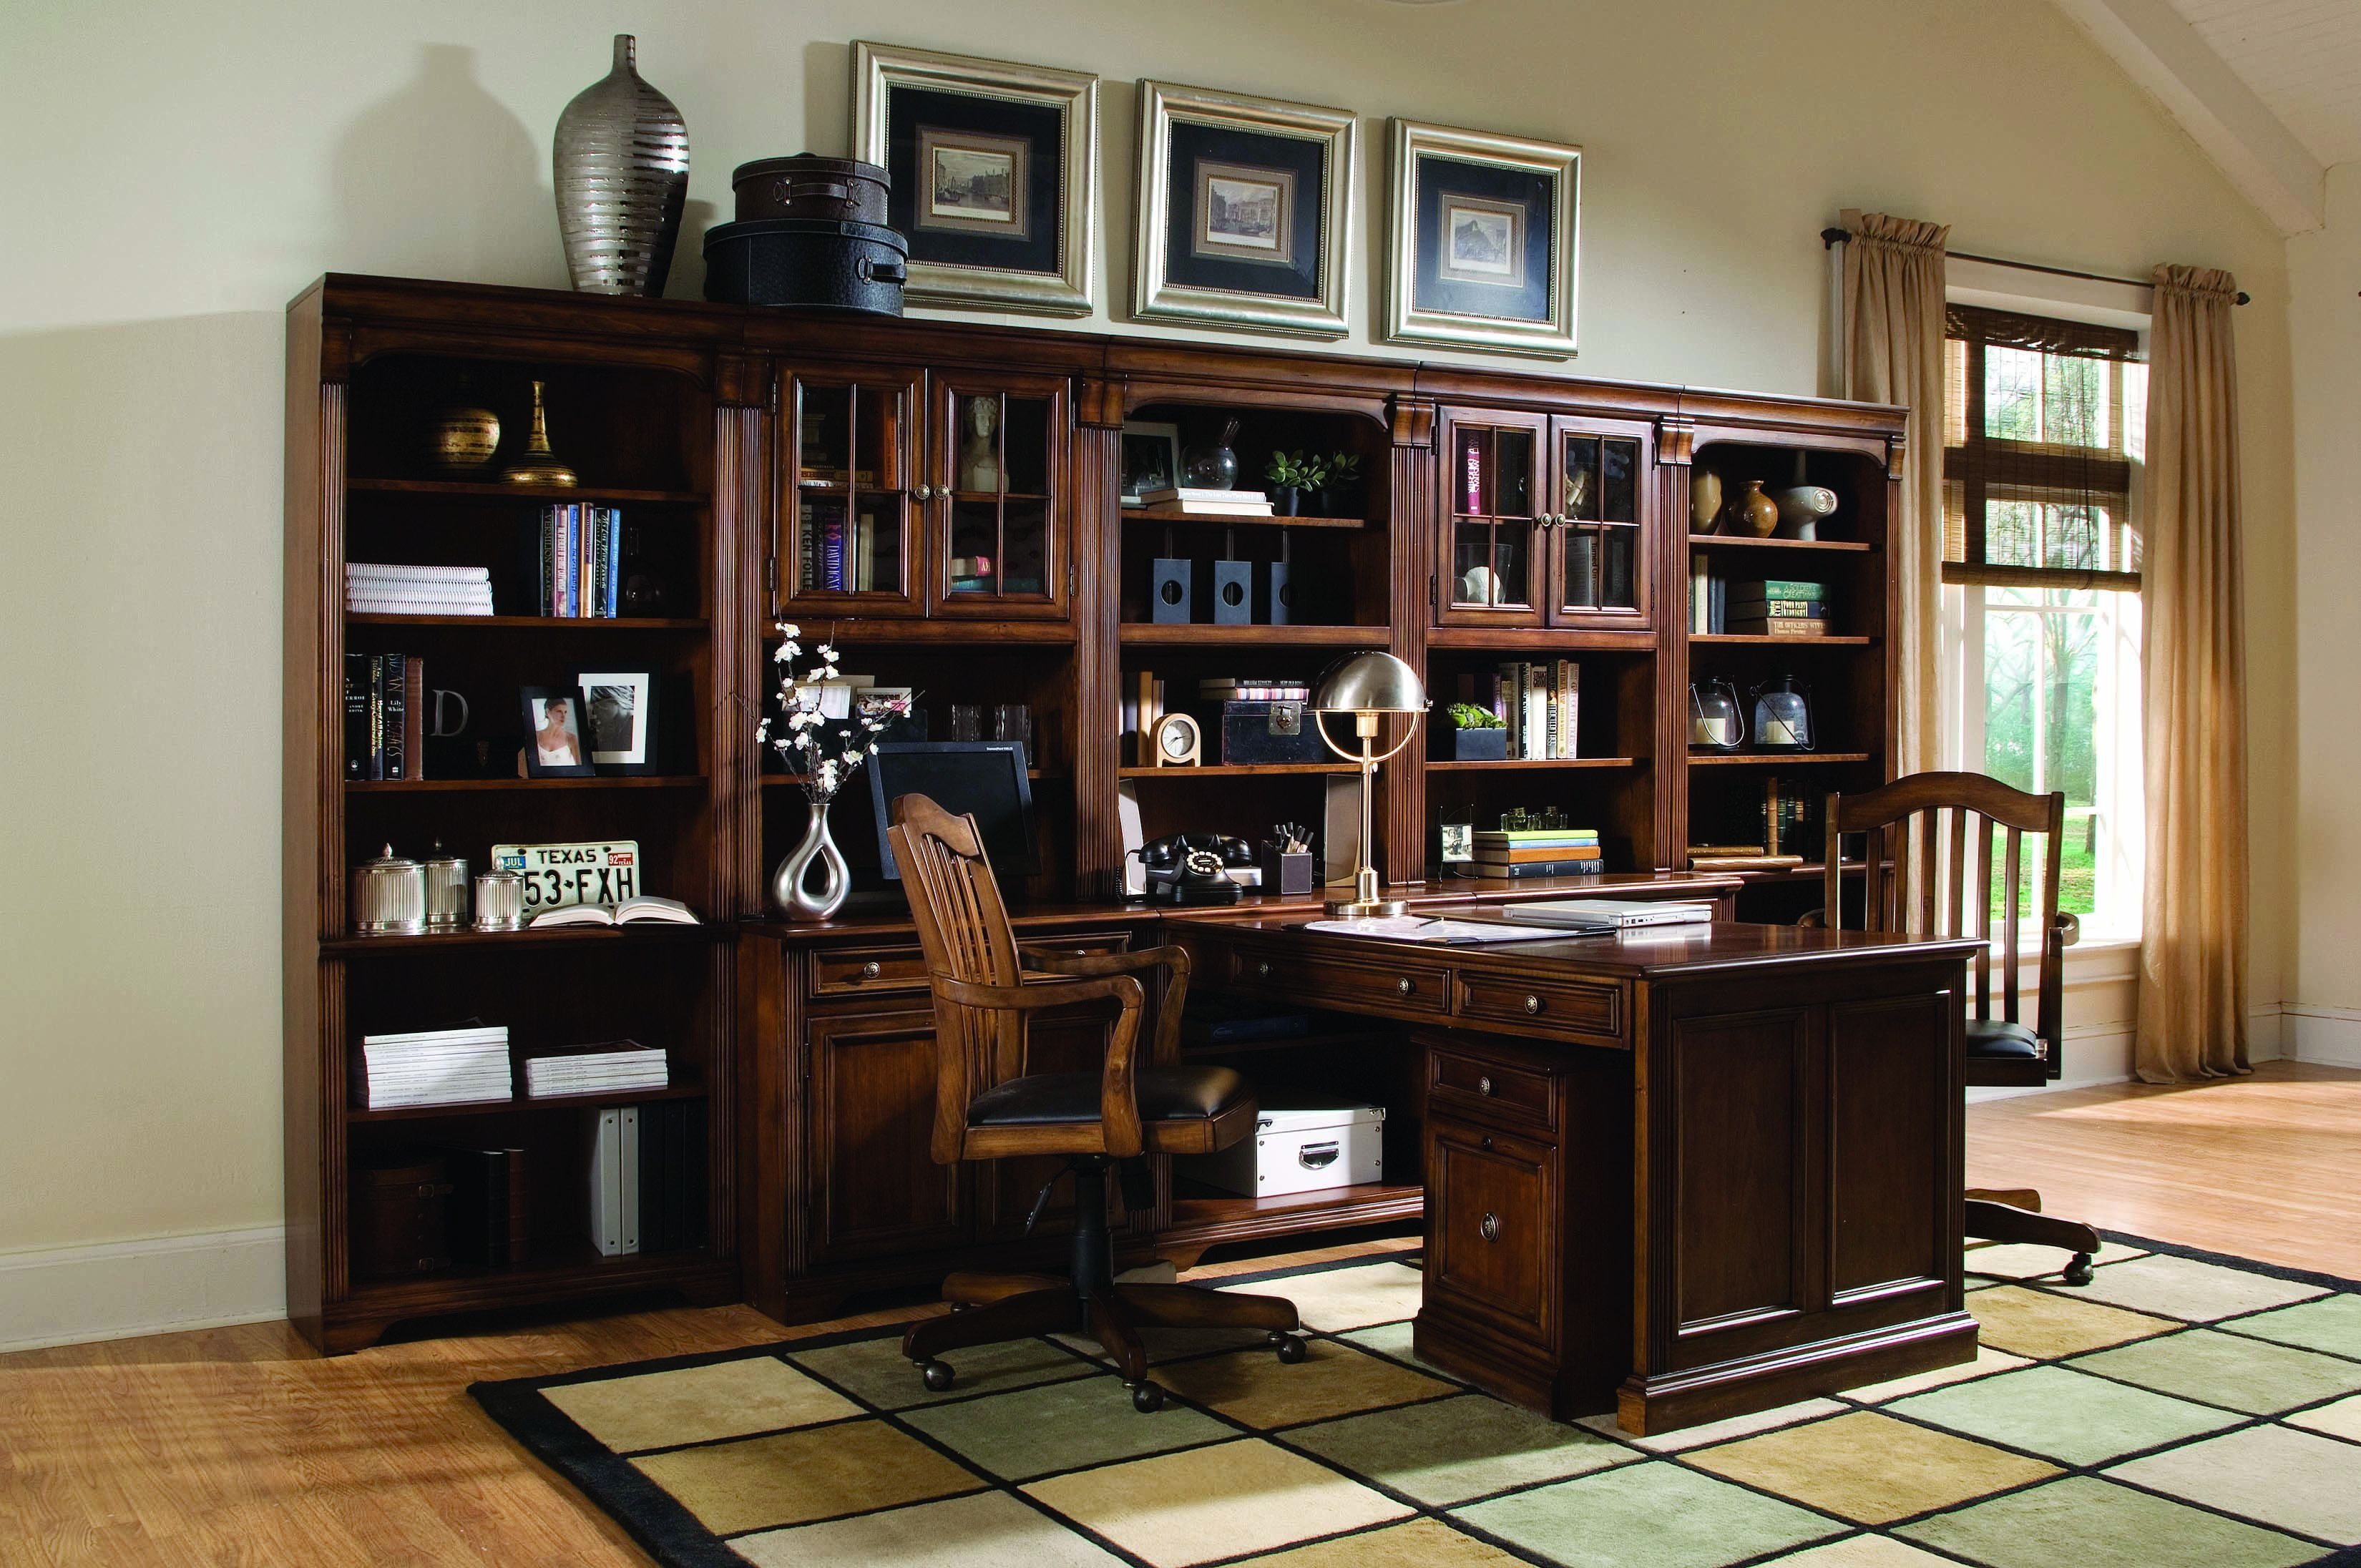 Hooker Furniture Home fice Brookhaven Modular Group